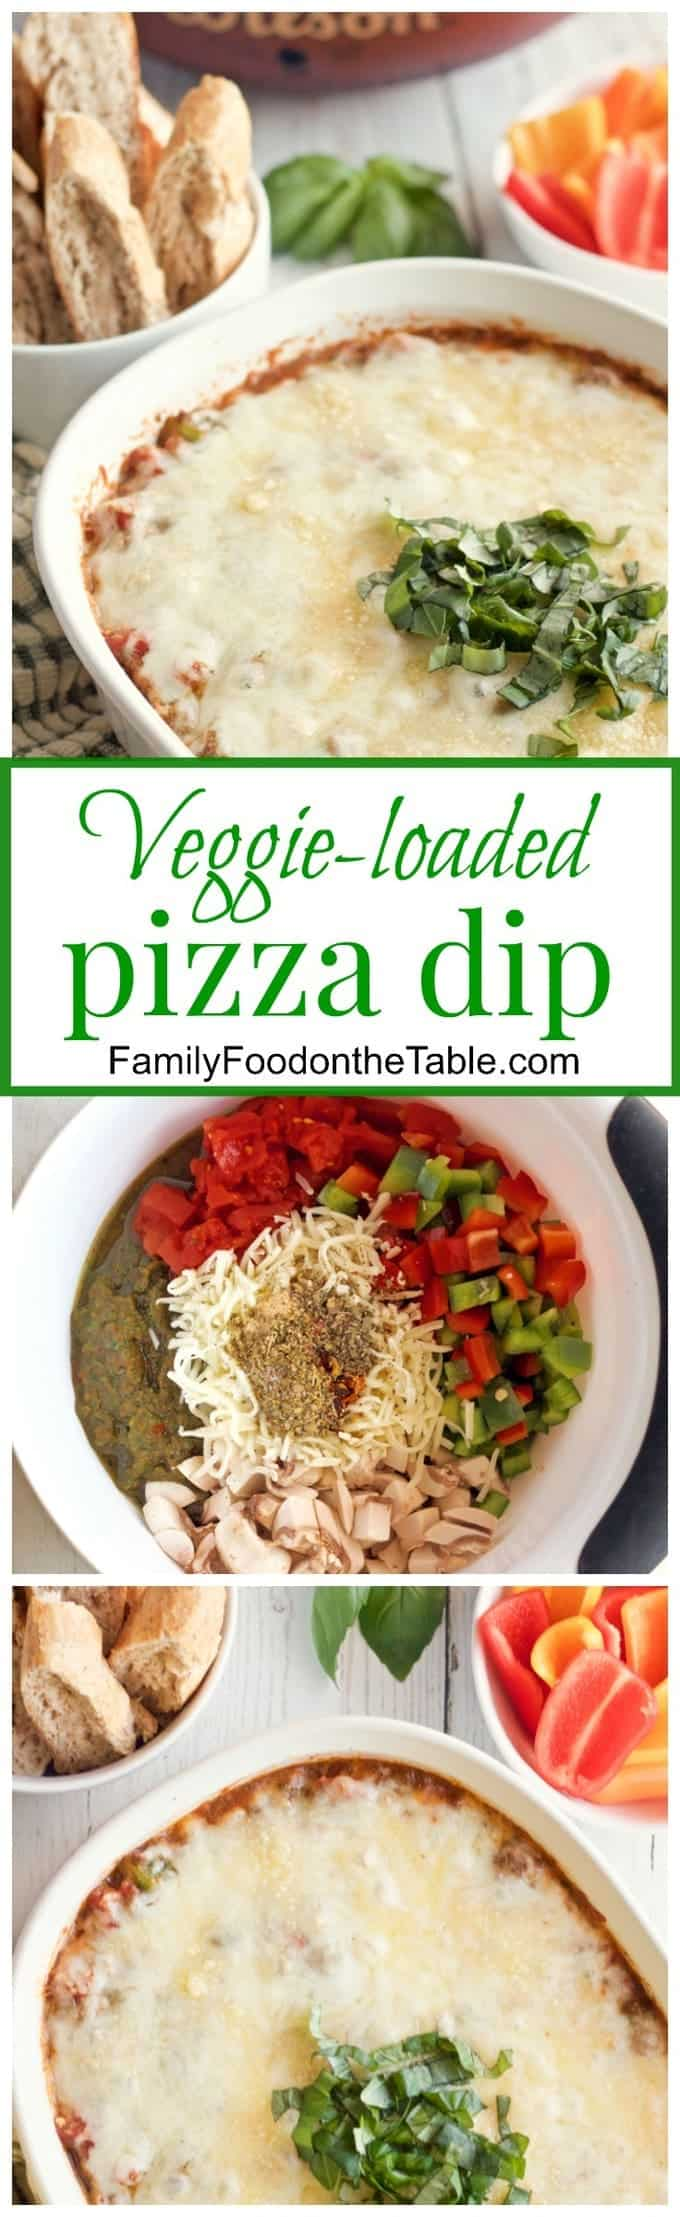 Cheesy veggie-packed pizza dip - great appetizer for football watching or party night -- Sure to be a hit with everyone! | FamilyFoodontheTable.com